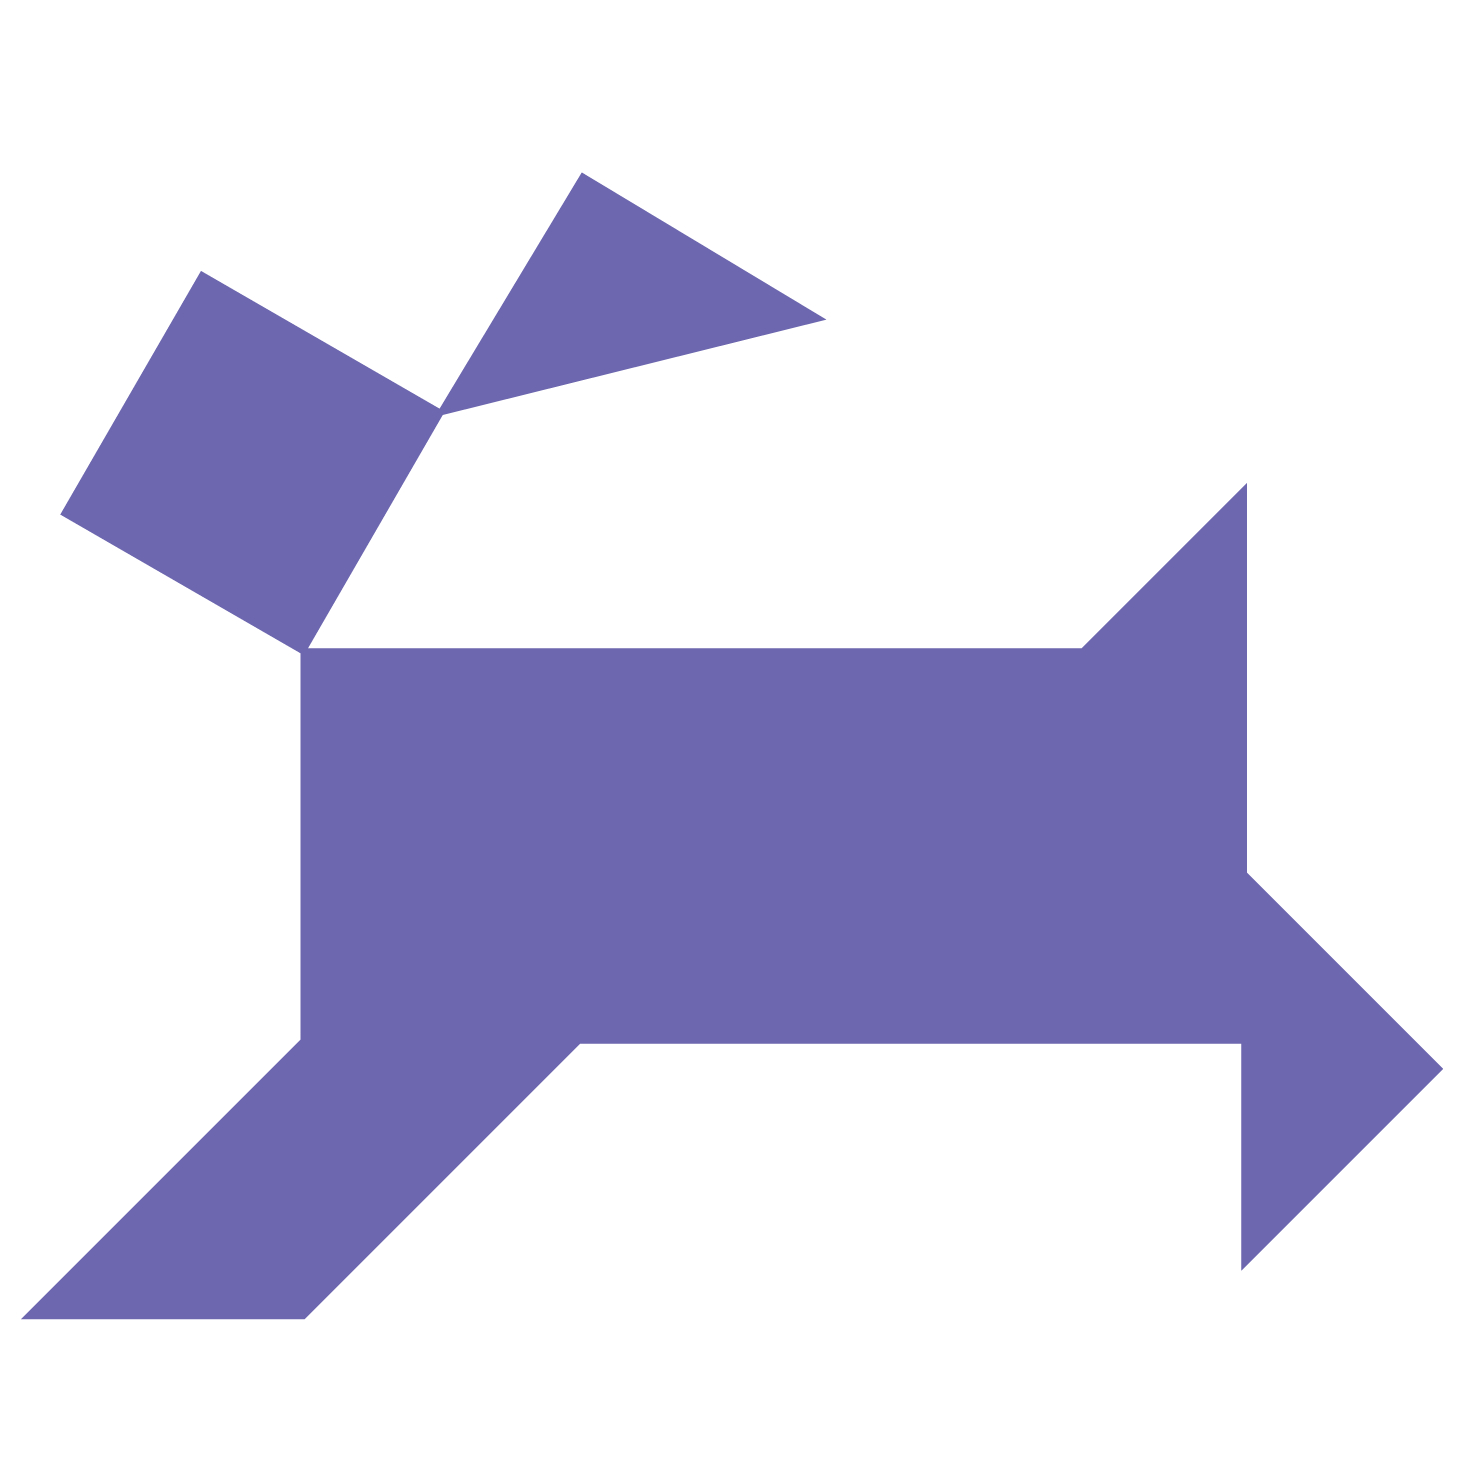 Tangram Dog Shape And Solution | Free Printable Puzzle Games - Printable Dog Puzzle